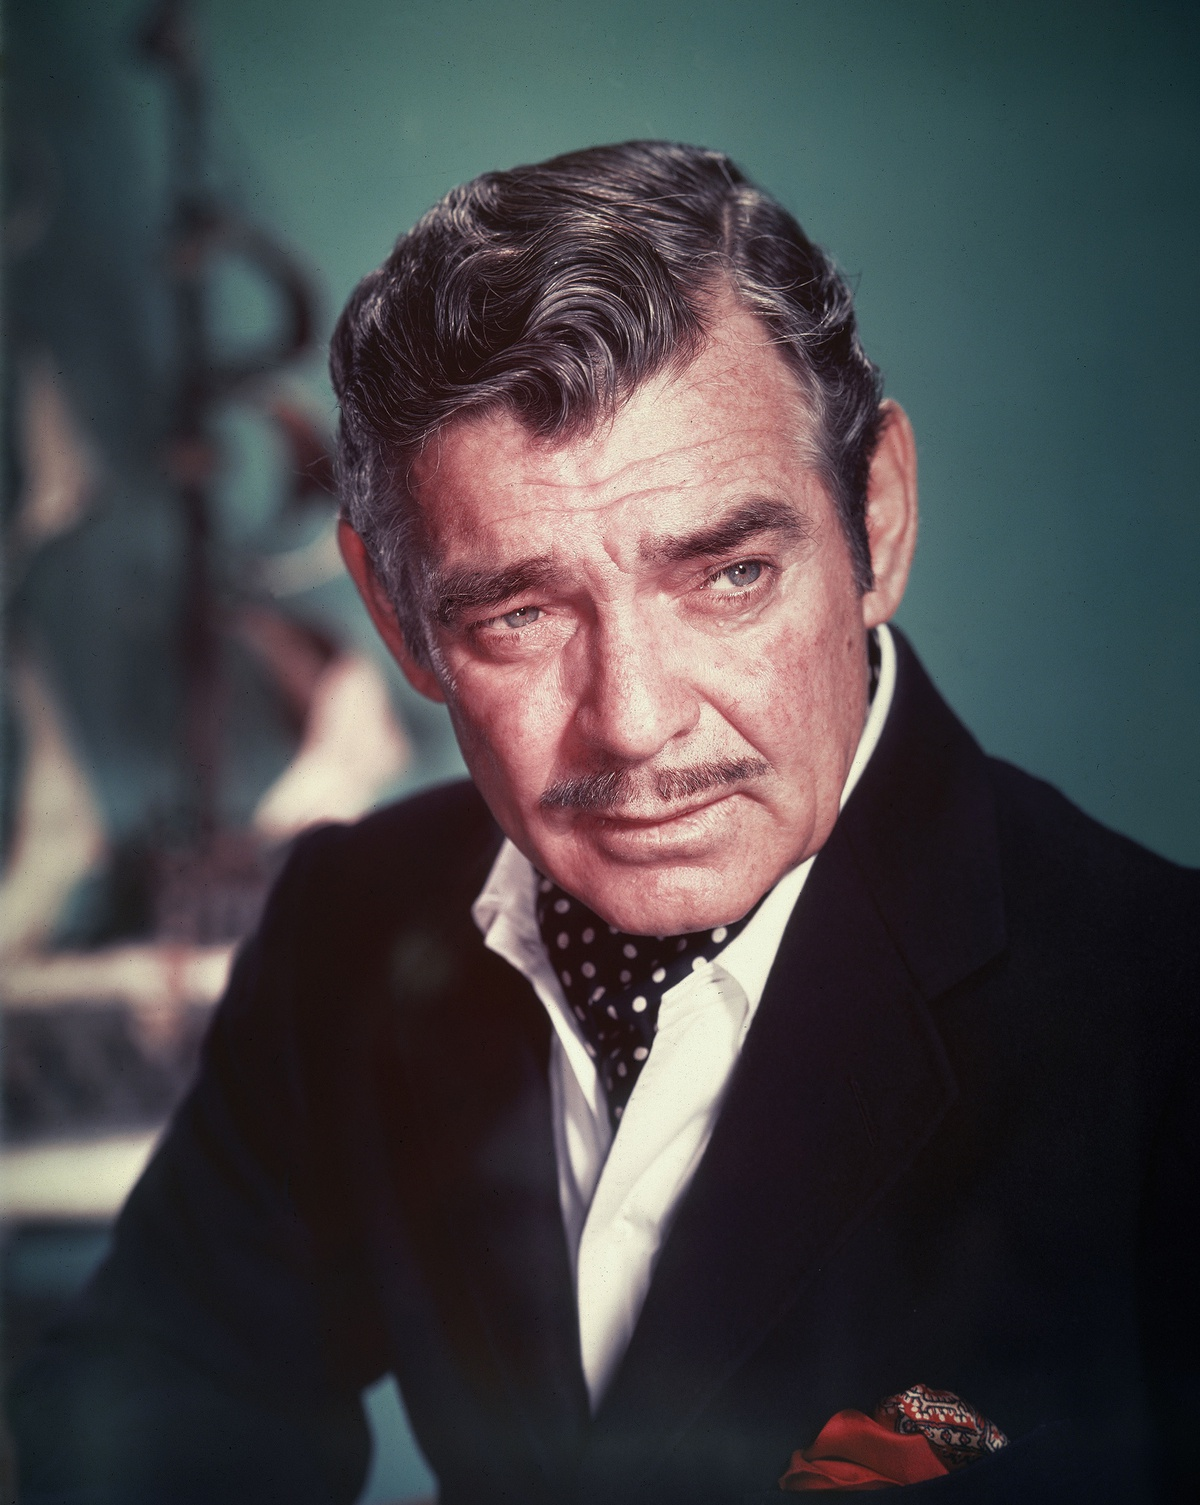 Circa 1955, American actor Clark Gable (1901 - 1960) wears a polka-dot ascot in an unidentified promotional film still, 1950s. КРЕДИТ